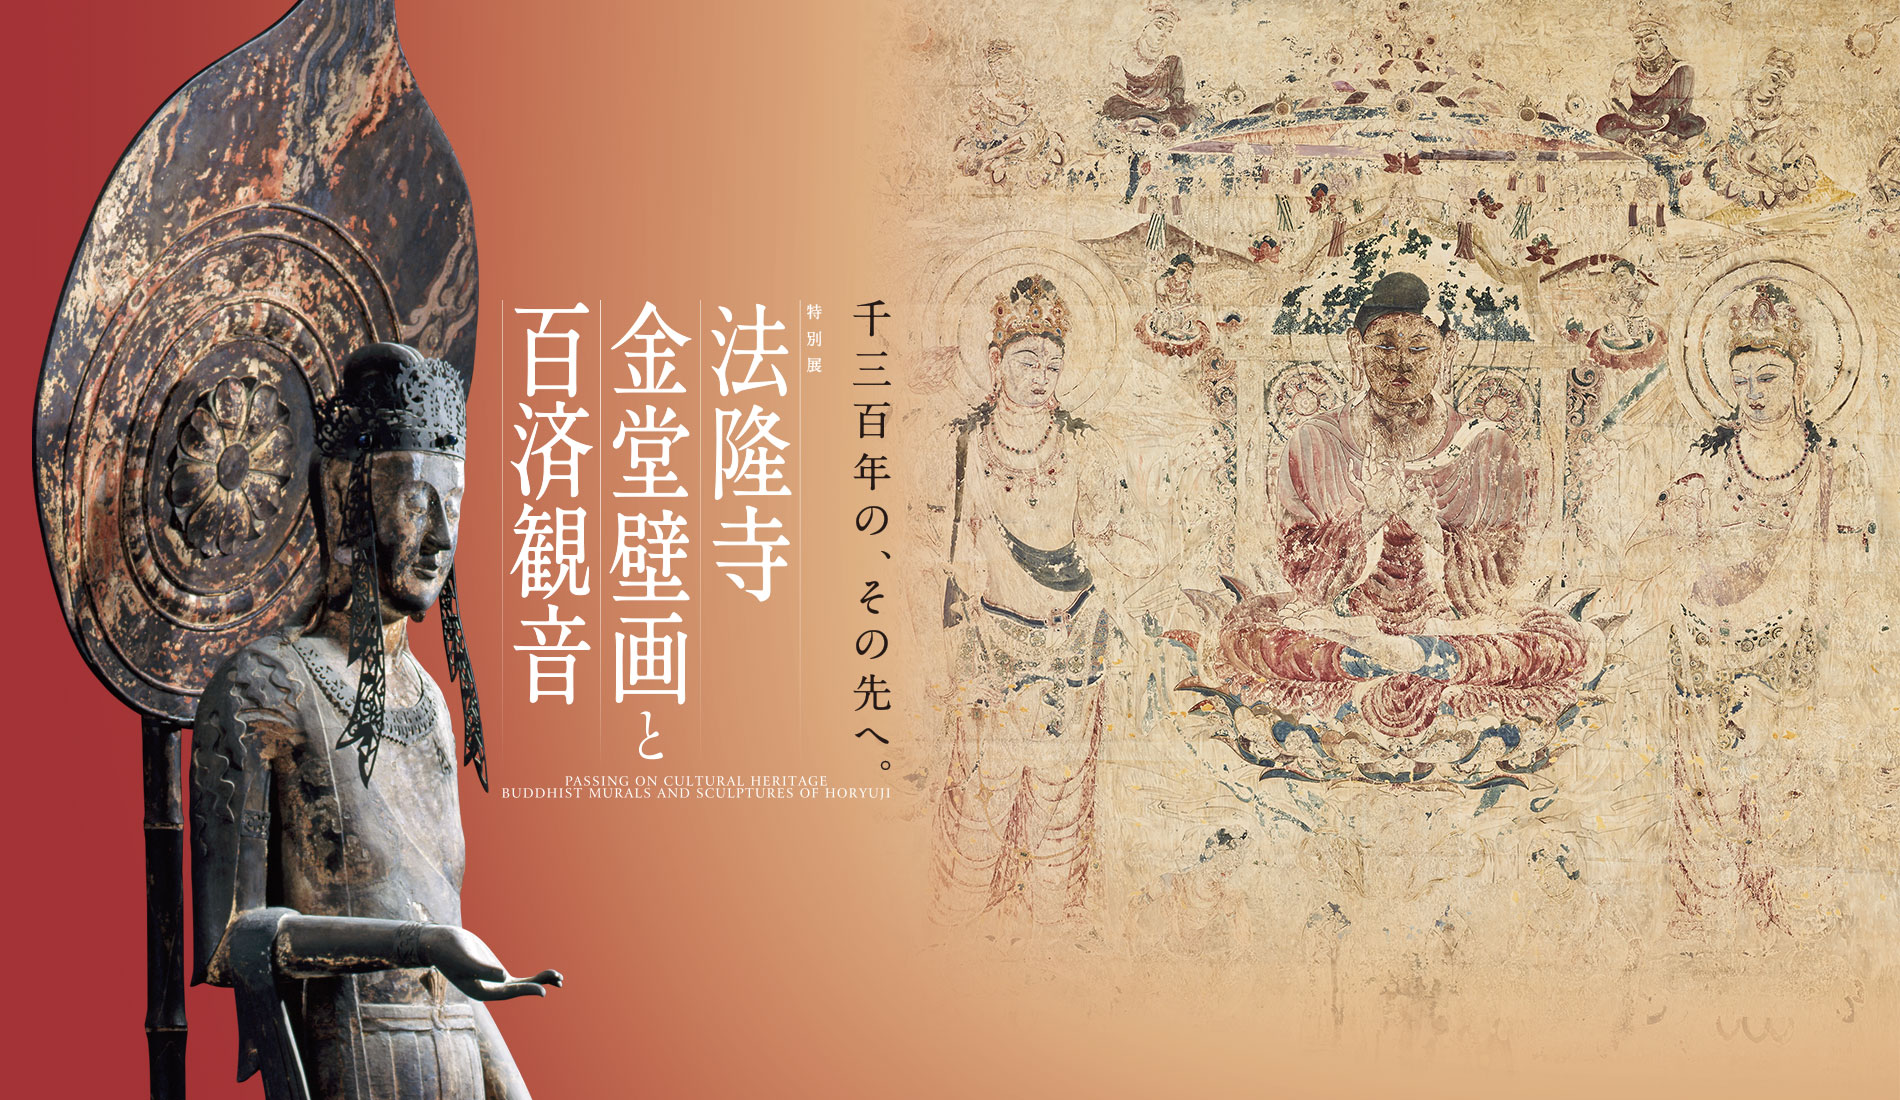 Passing on Cultural Heritage: Buddhist Murals and Sculptures of Horyuji